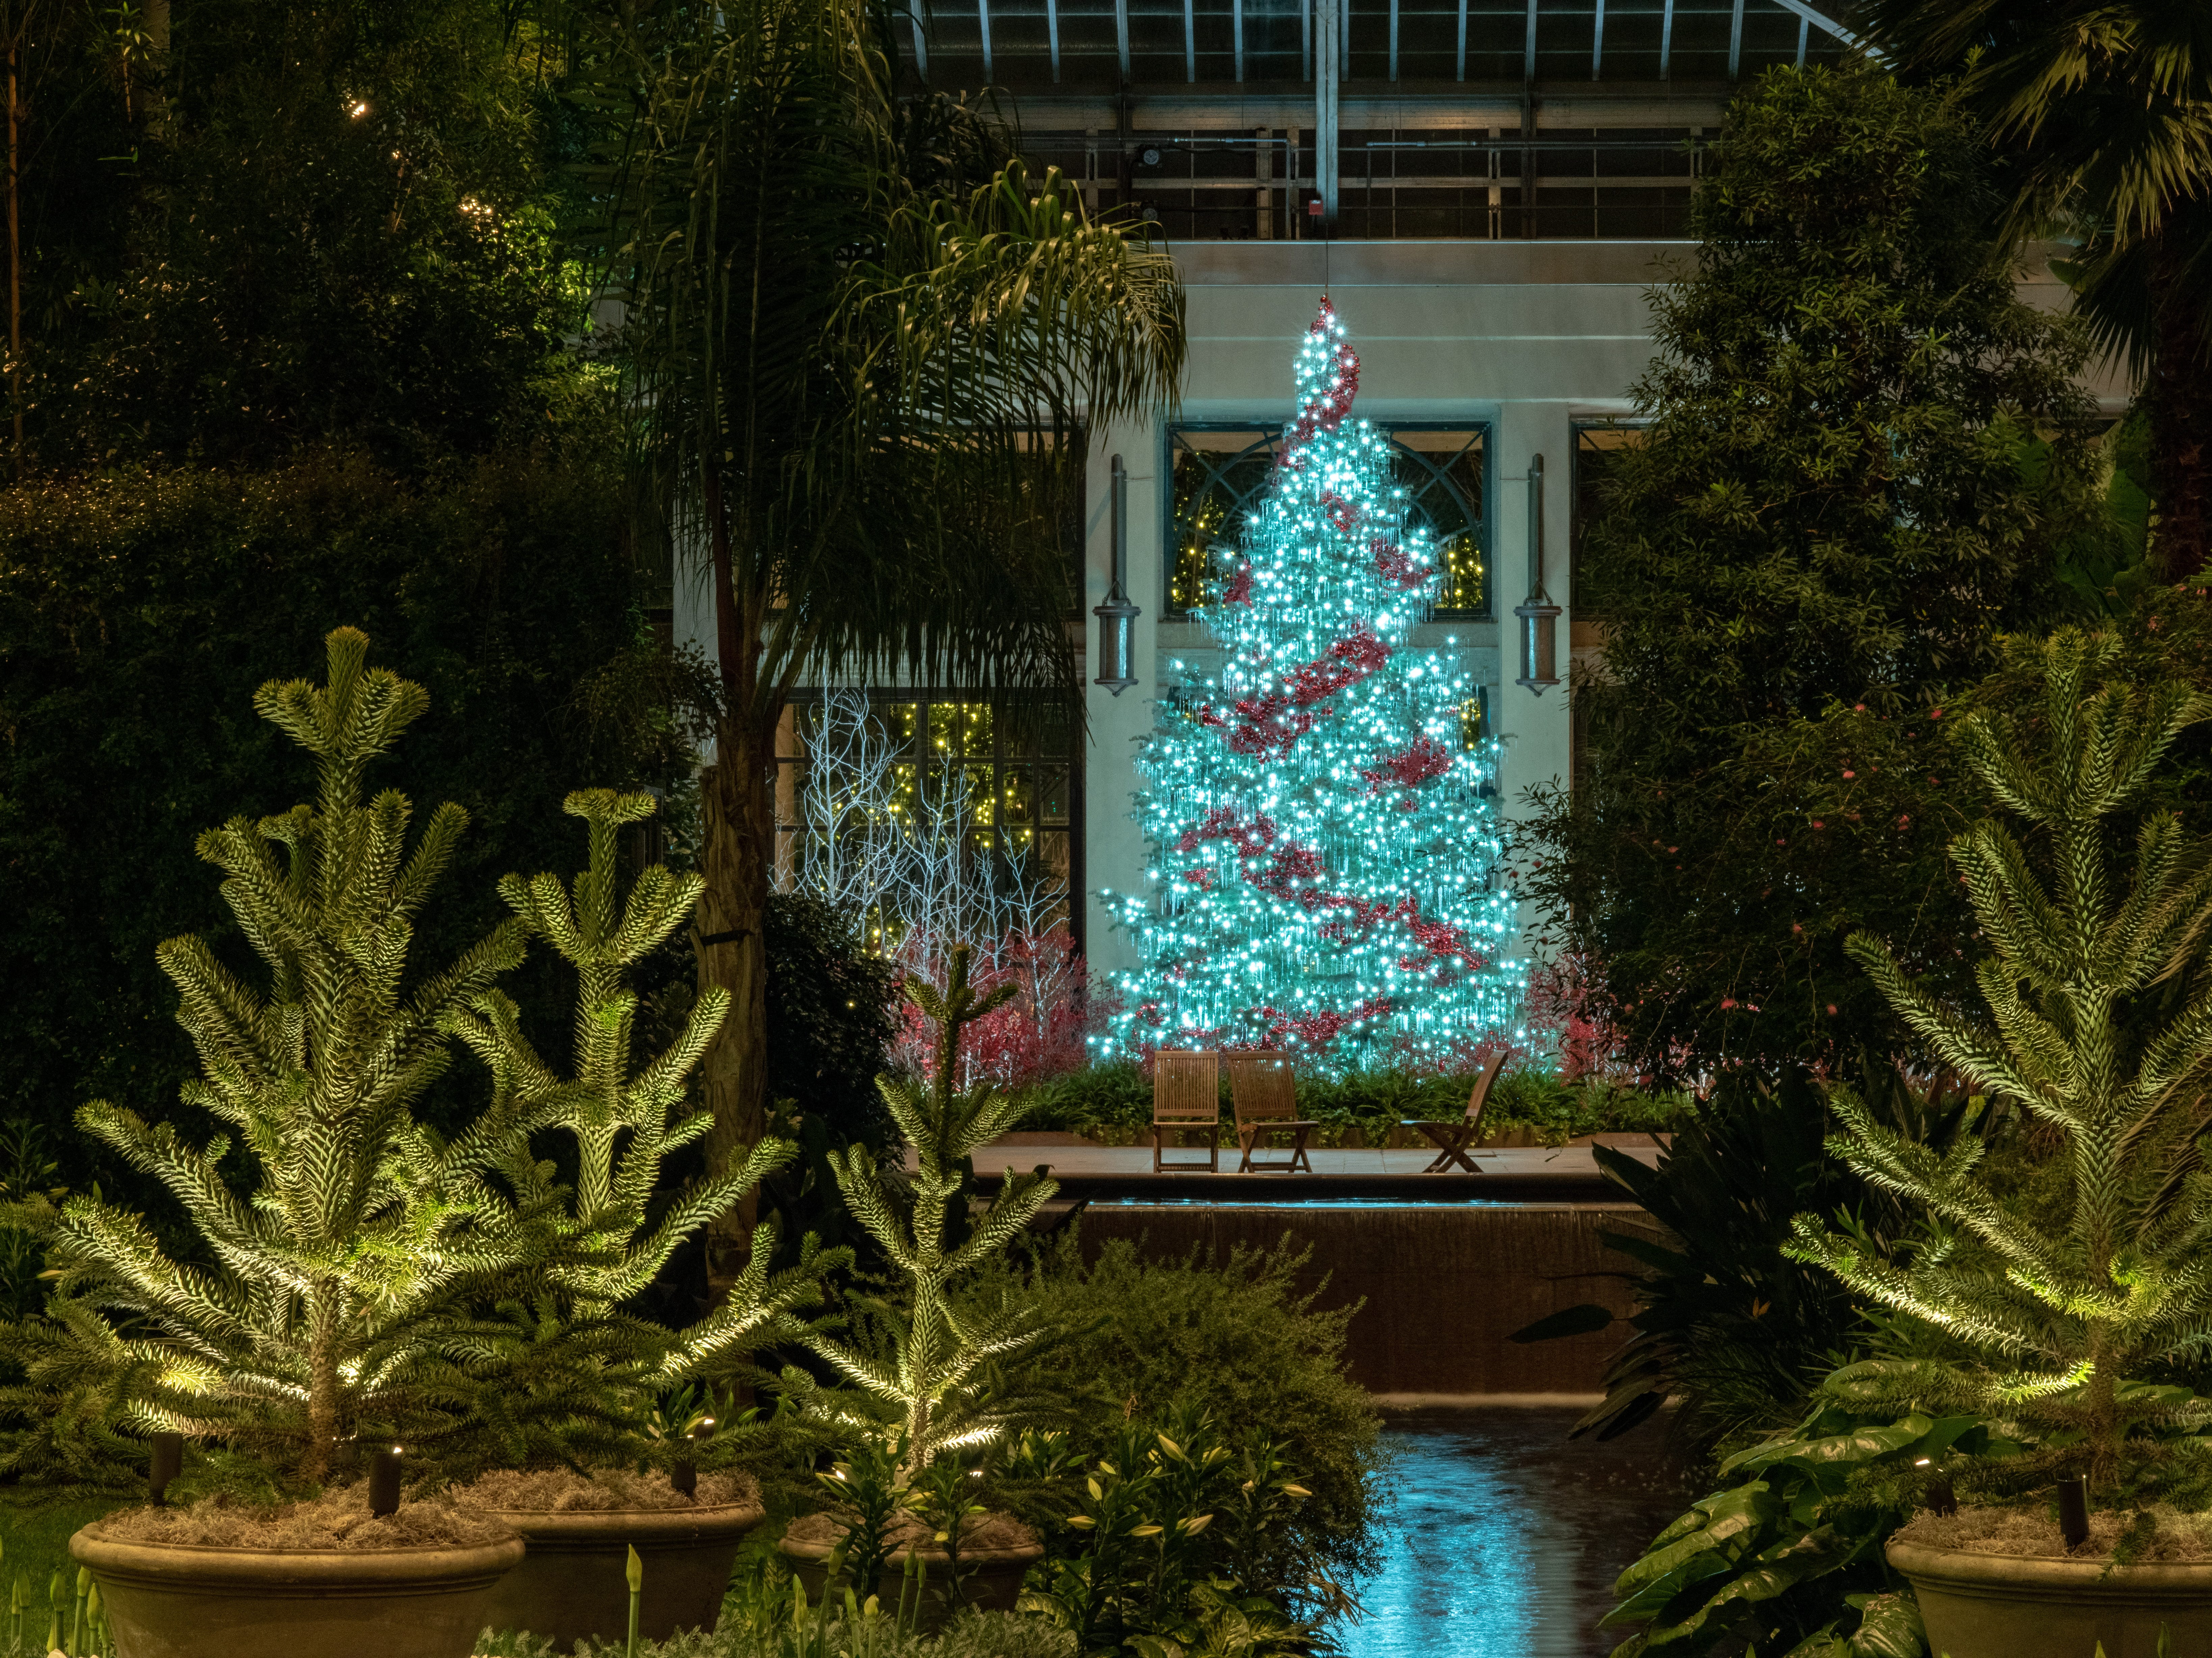 This 24-foot tall white fir in the Longwood Gardens conservatory features 6,000 icicles and a swath of red ornaments; that's monkey-puzzle tree in the foreground.